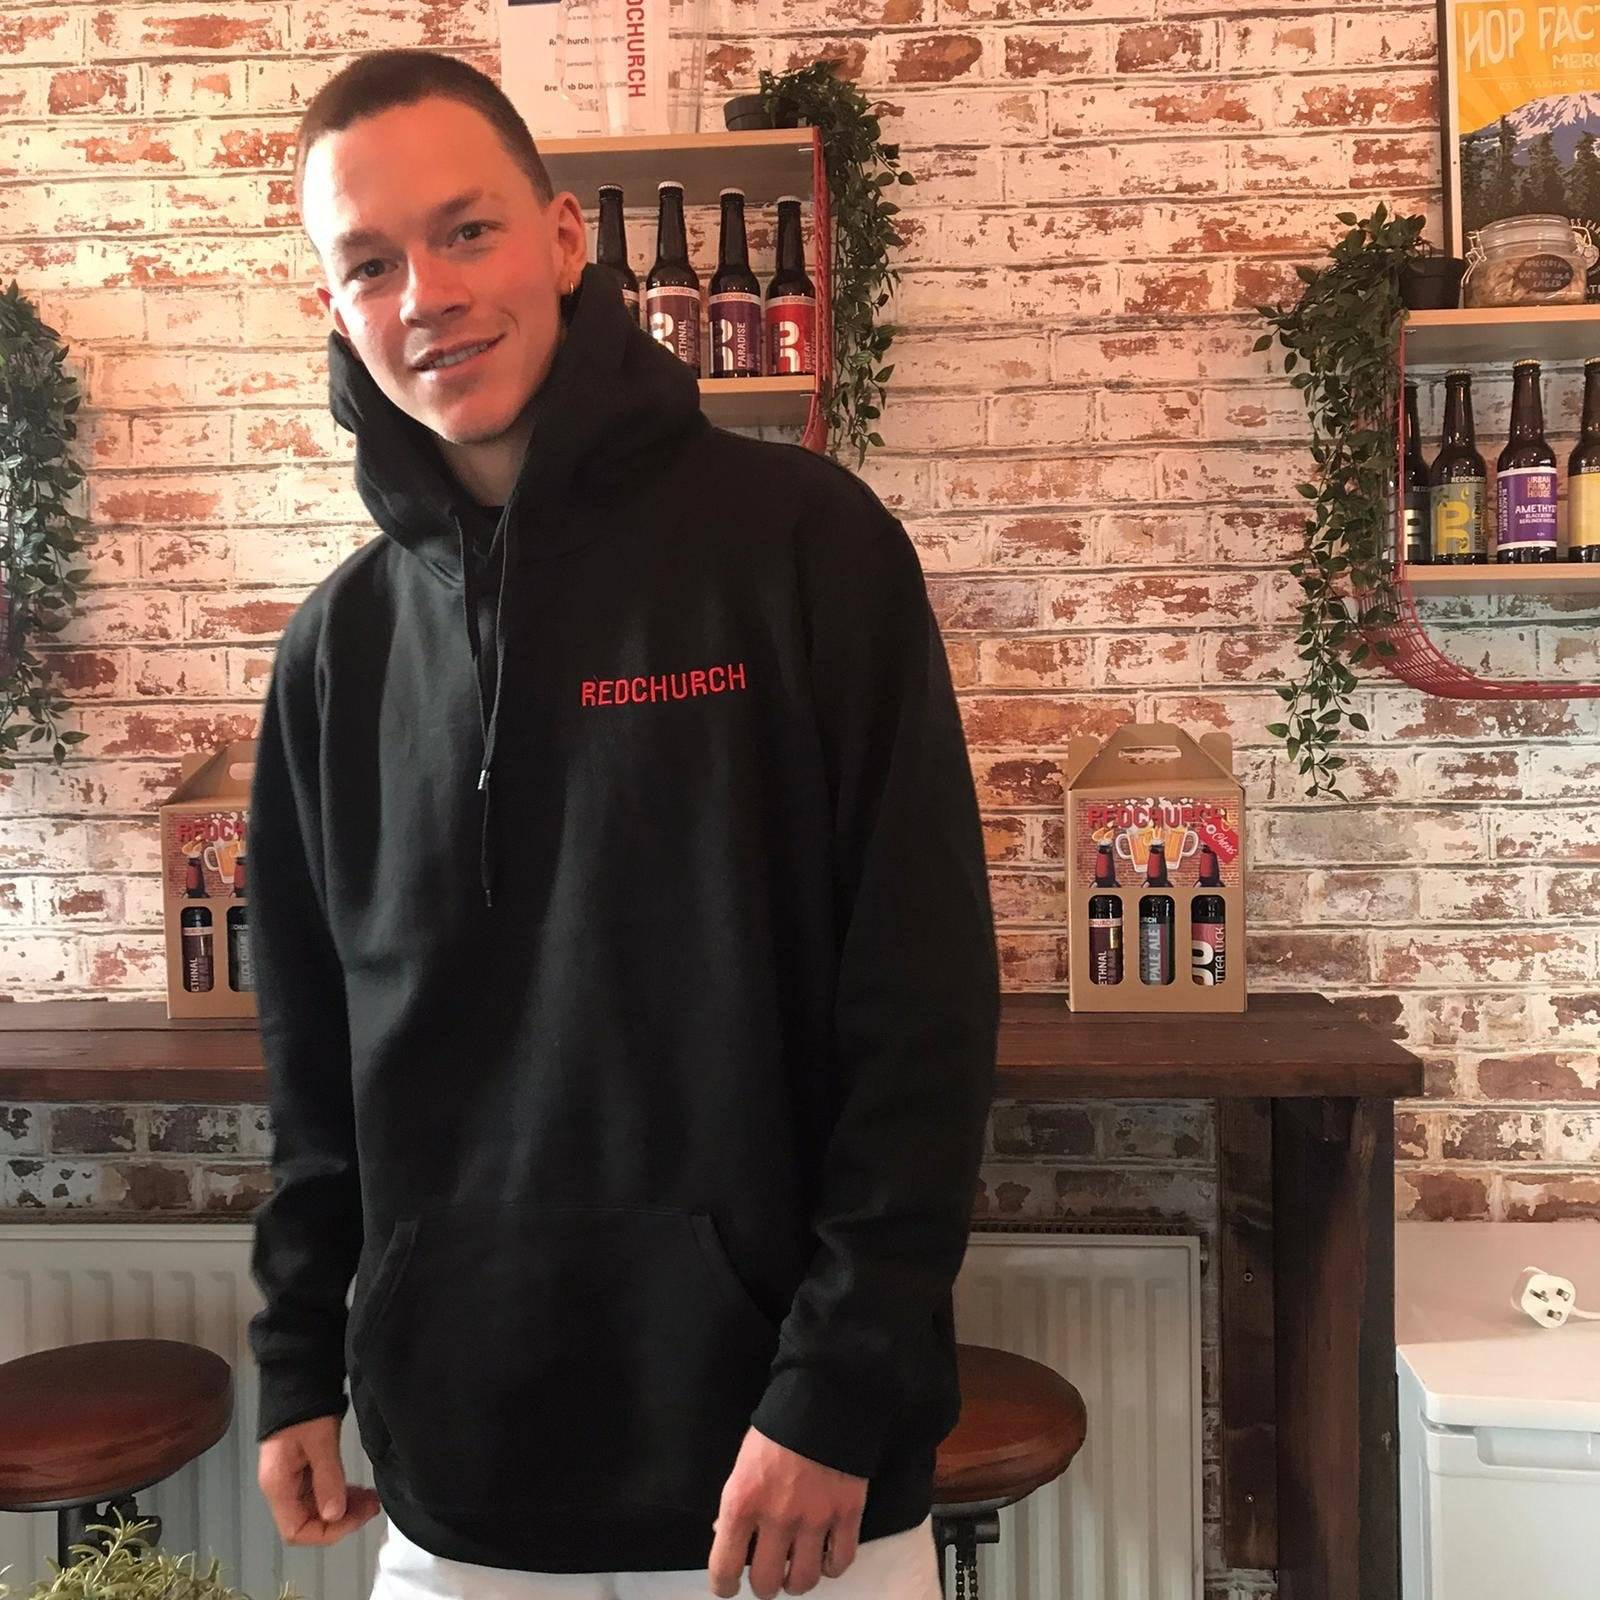 Redchurch Brewery Redchurch Embroidered Hoodie - XL 44-46